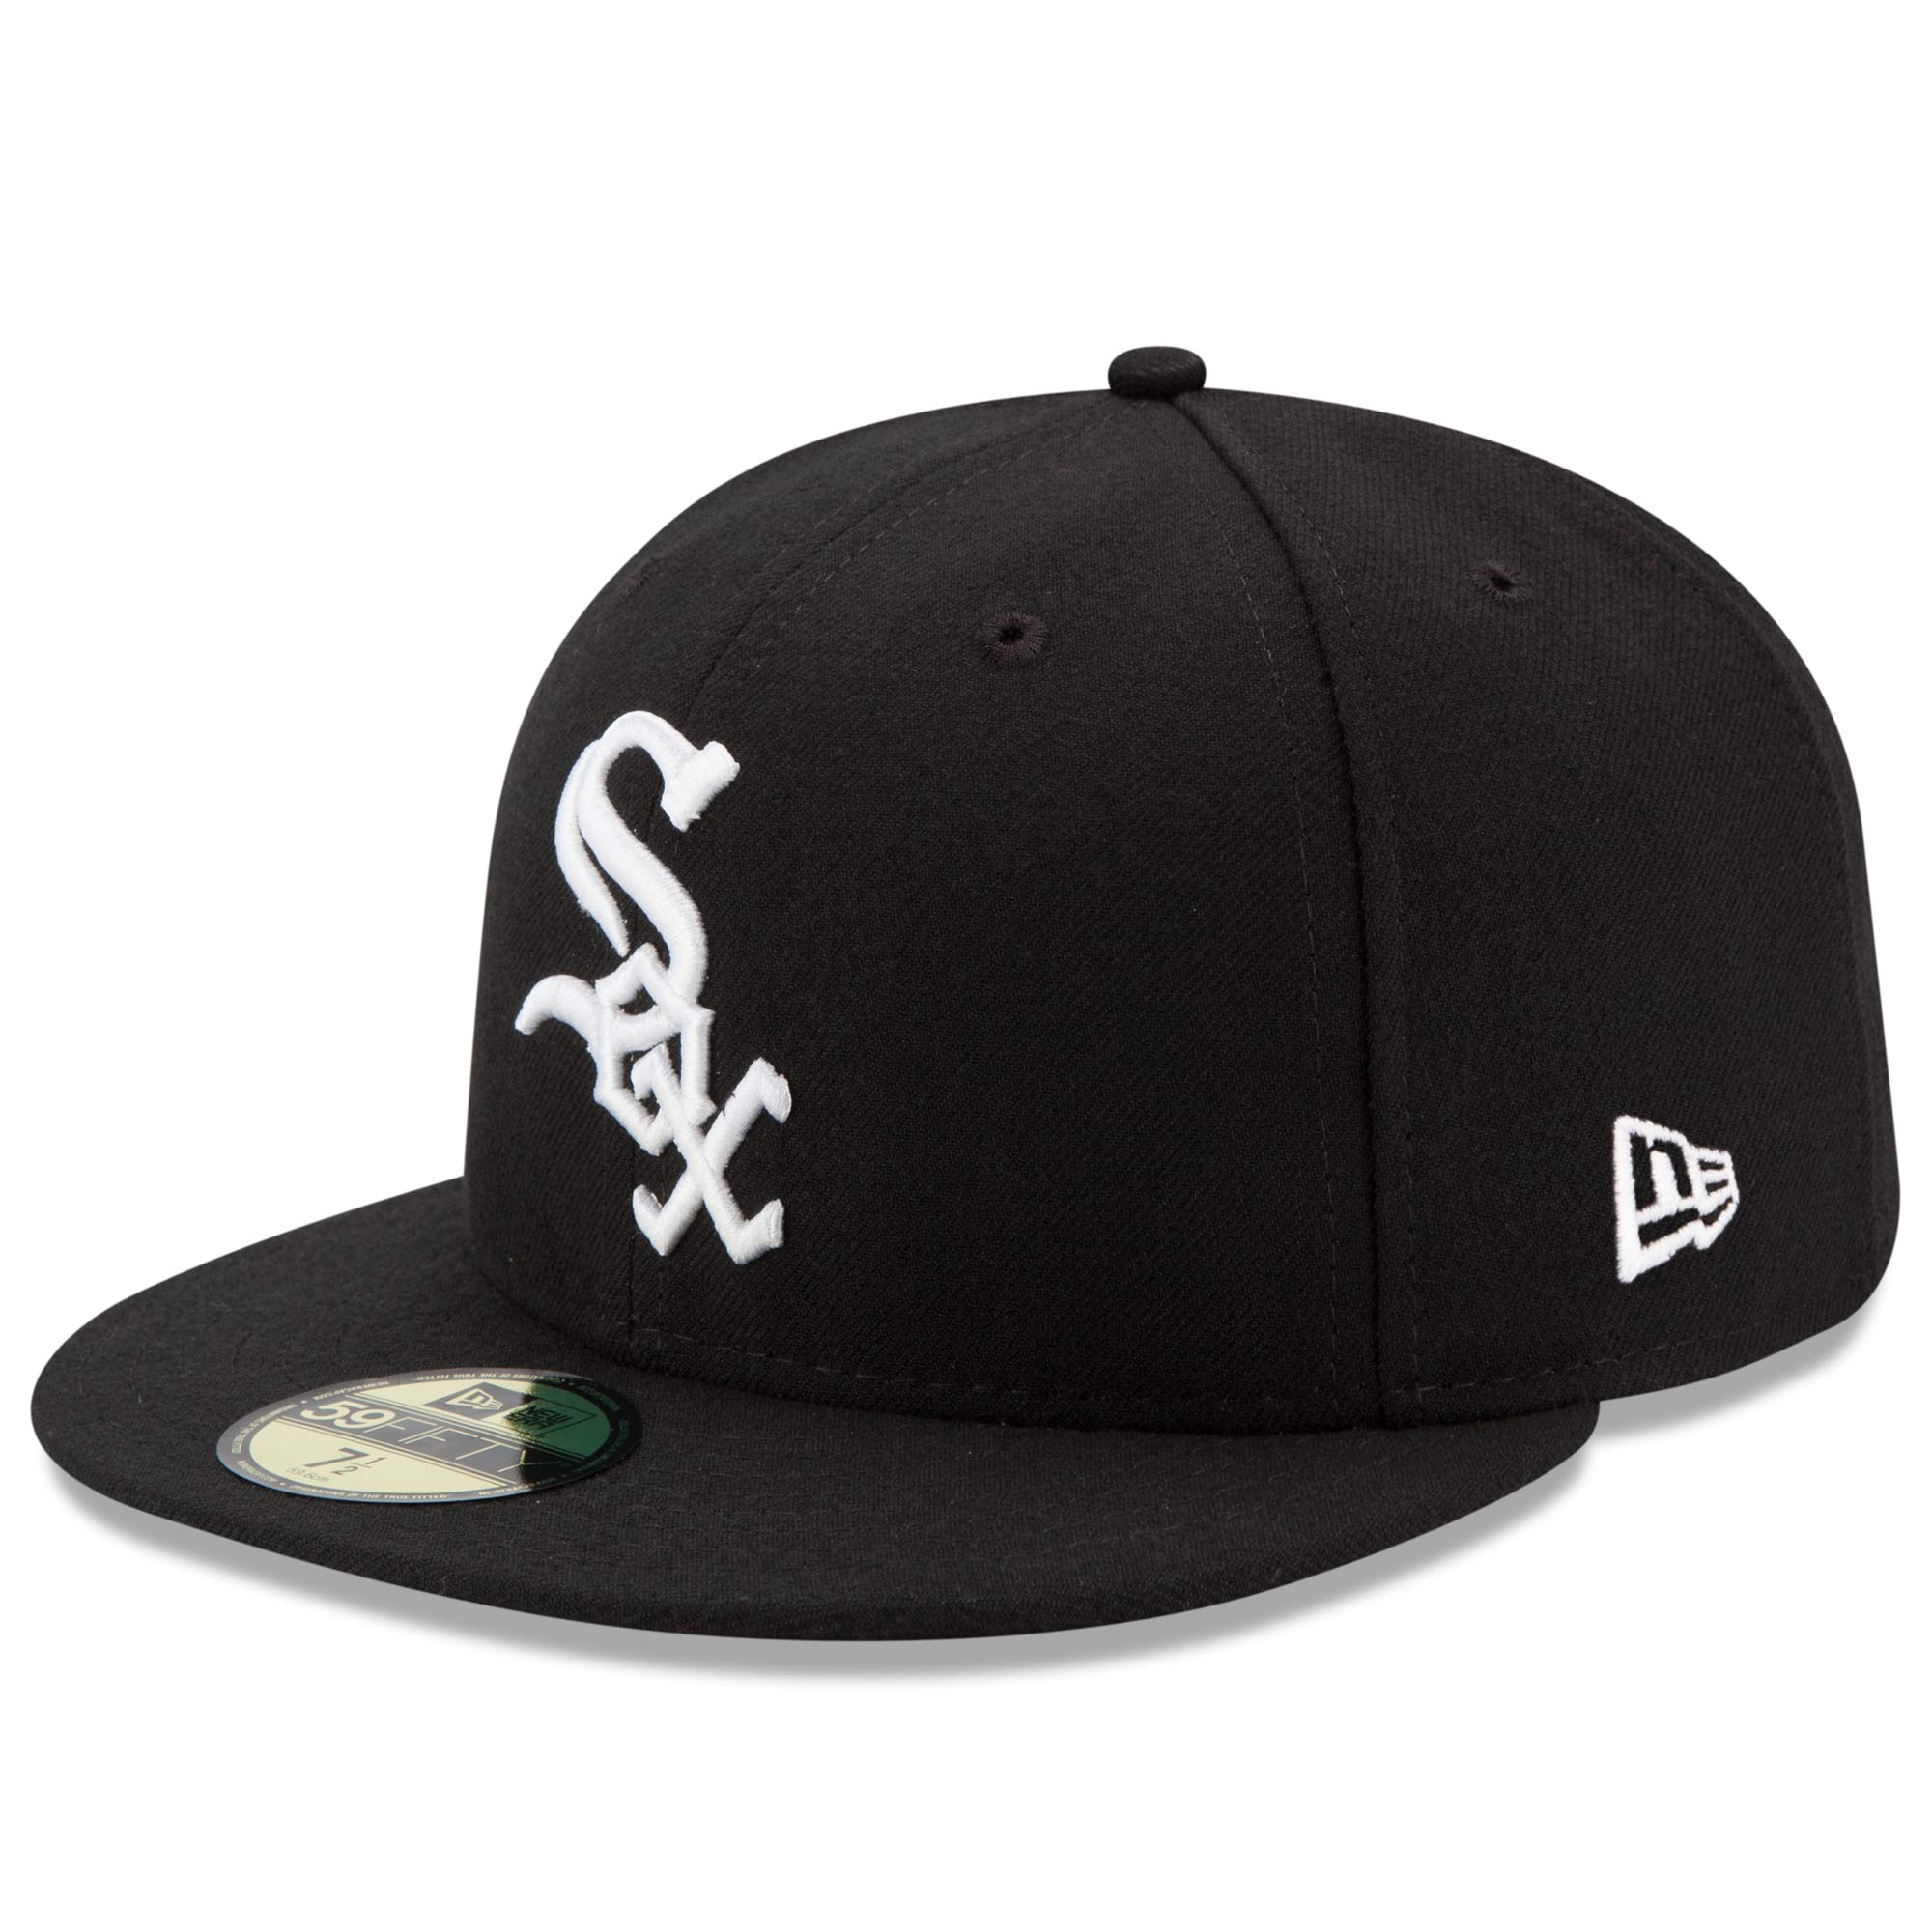 0028c49c2 Chicago White Sox Team Shop - Walmart.com